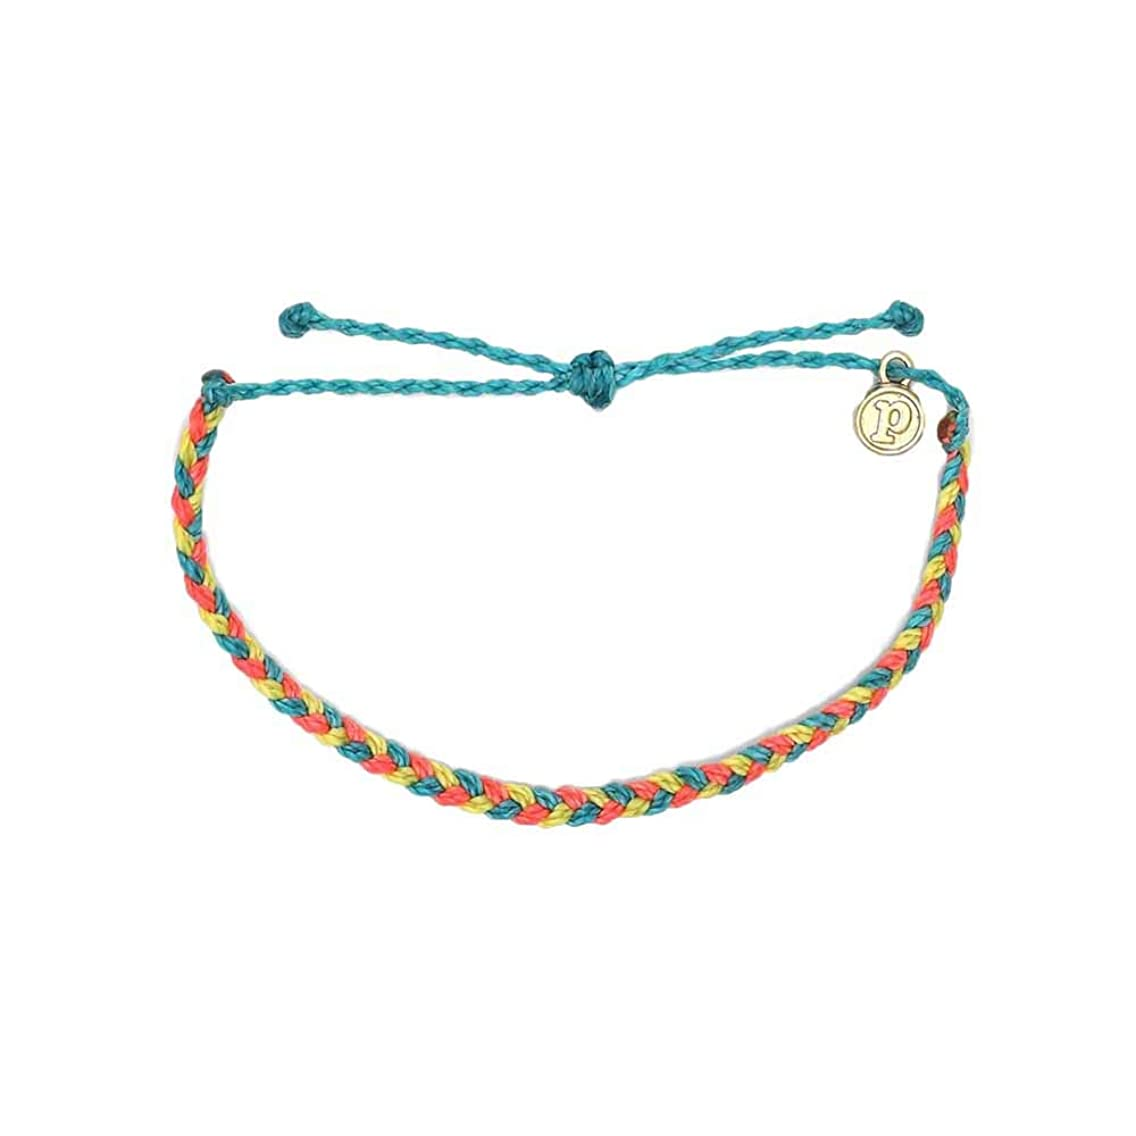 Pura Vida Mini Braided Bracelet - Plated Charm, Adjustable Band